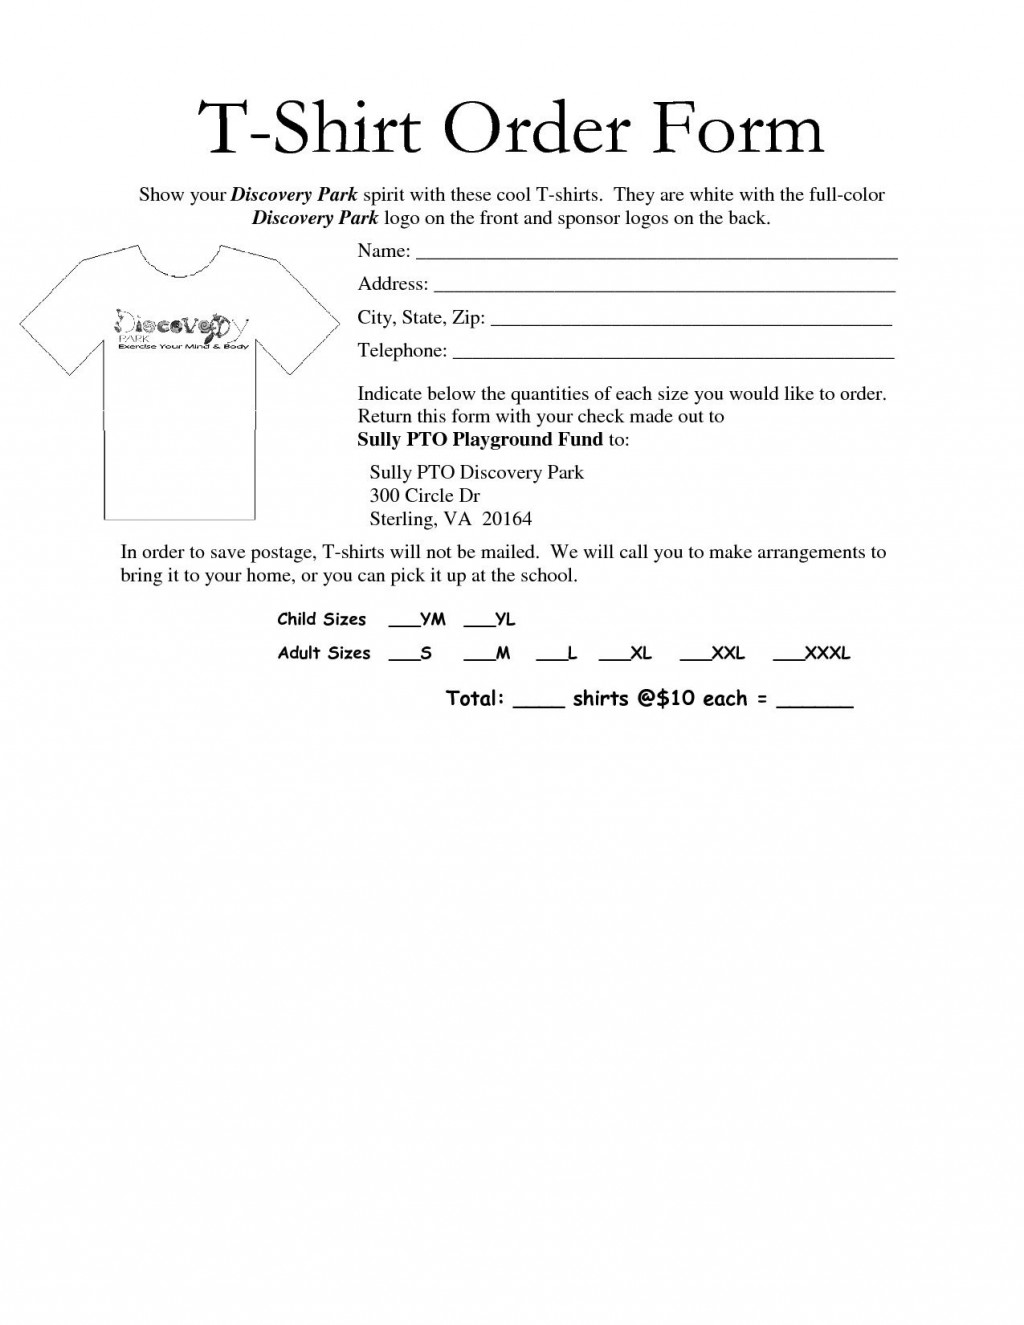 005 Remarkable Shirt Order Form Template Highest Quality  Templates T Microsoft Word Excel Download TeeLarge